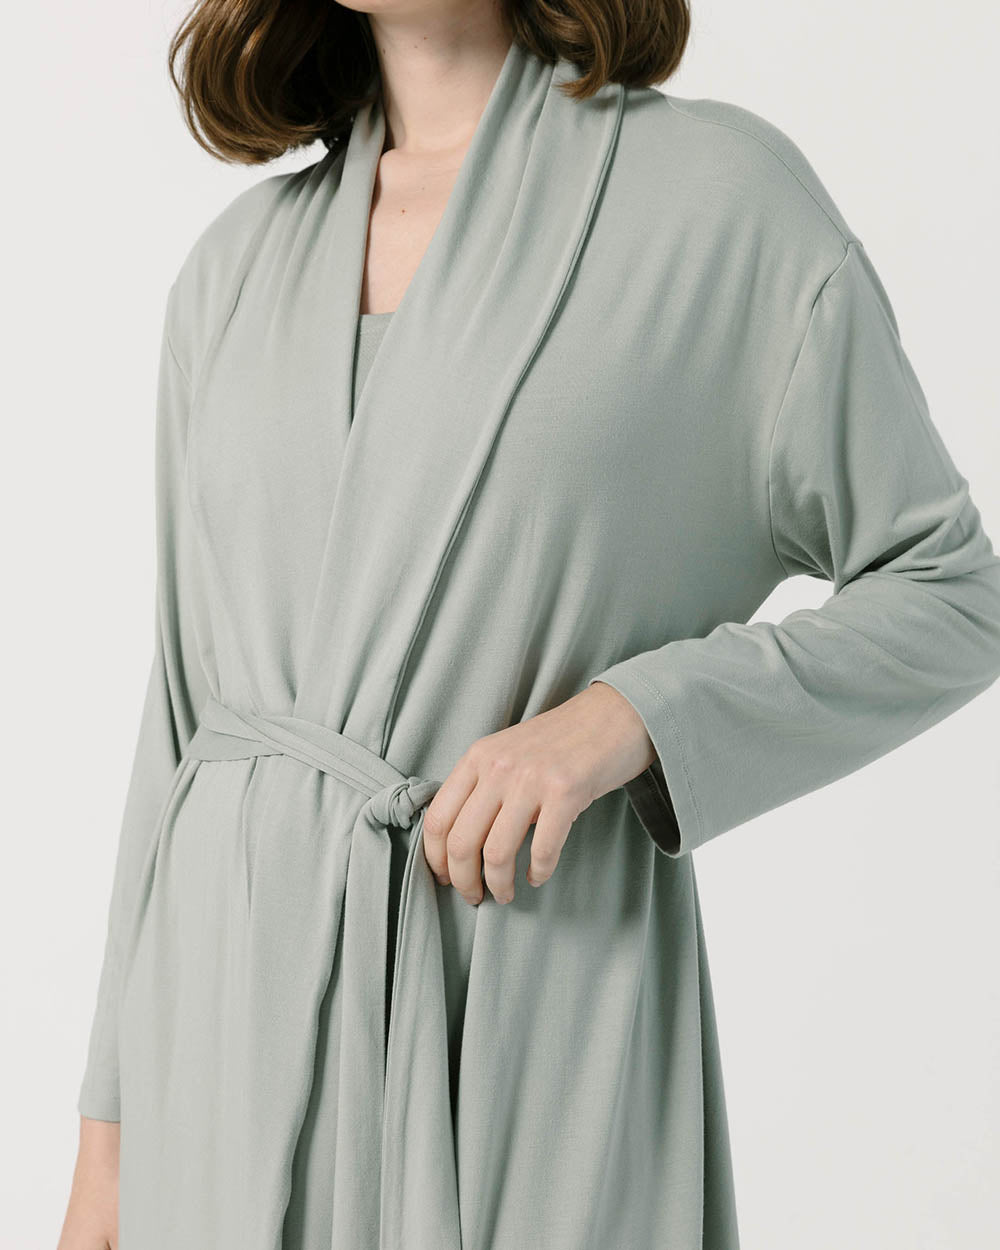 Sage Green Women's Robe